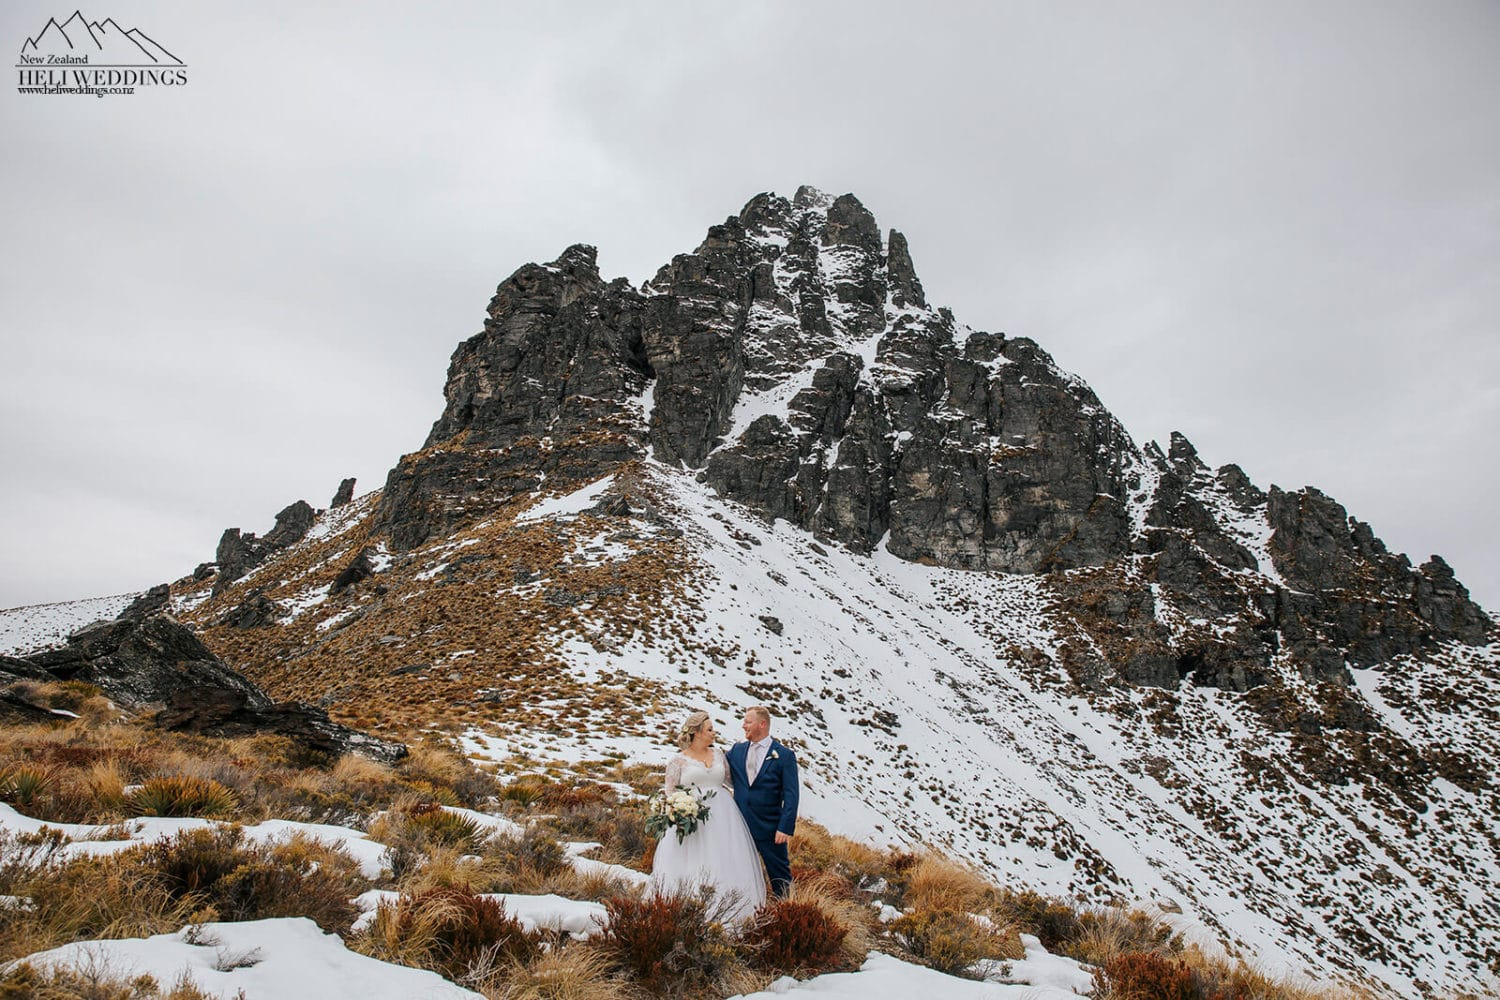 Winter wedding in Queenstown